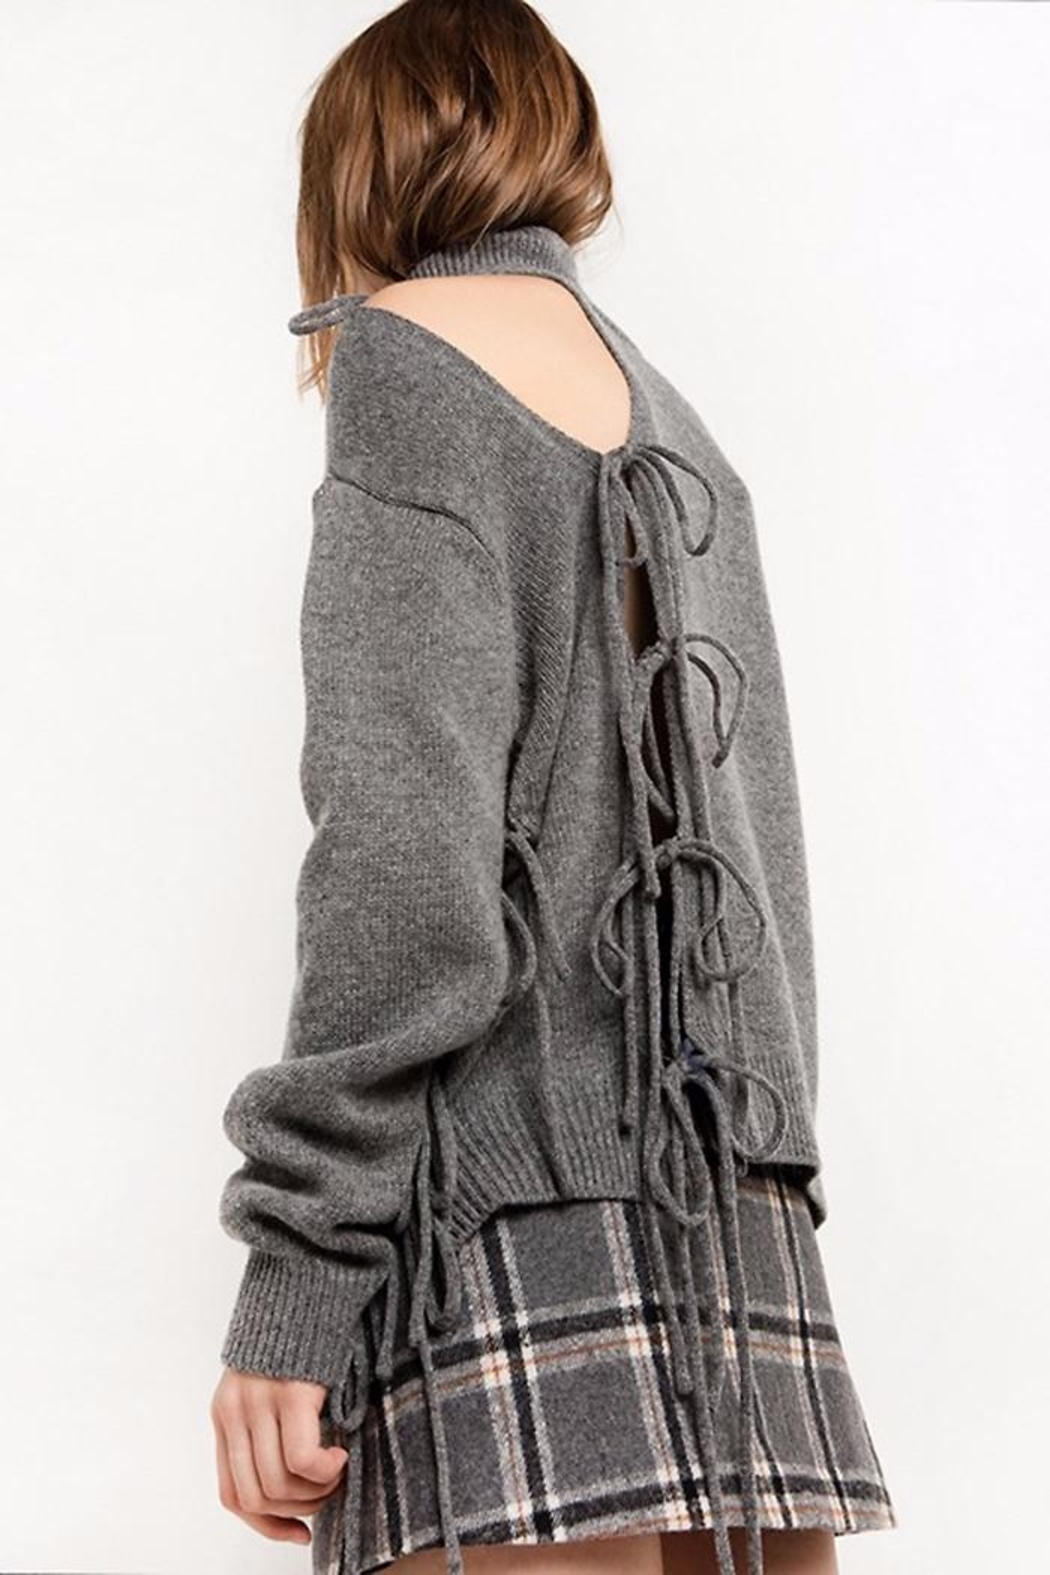 People Outfitter Alice Lace-Up Sweater - Main Image